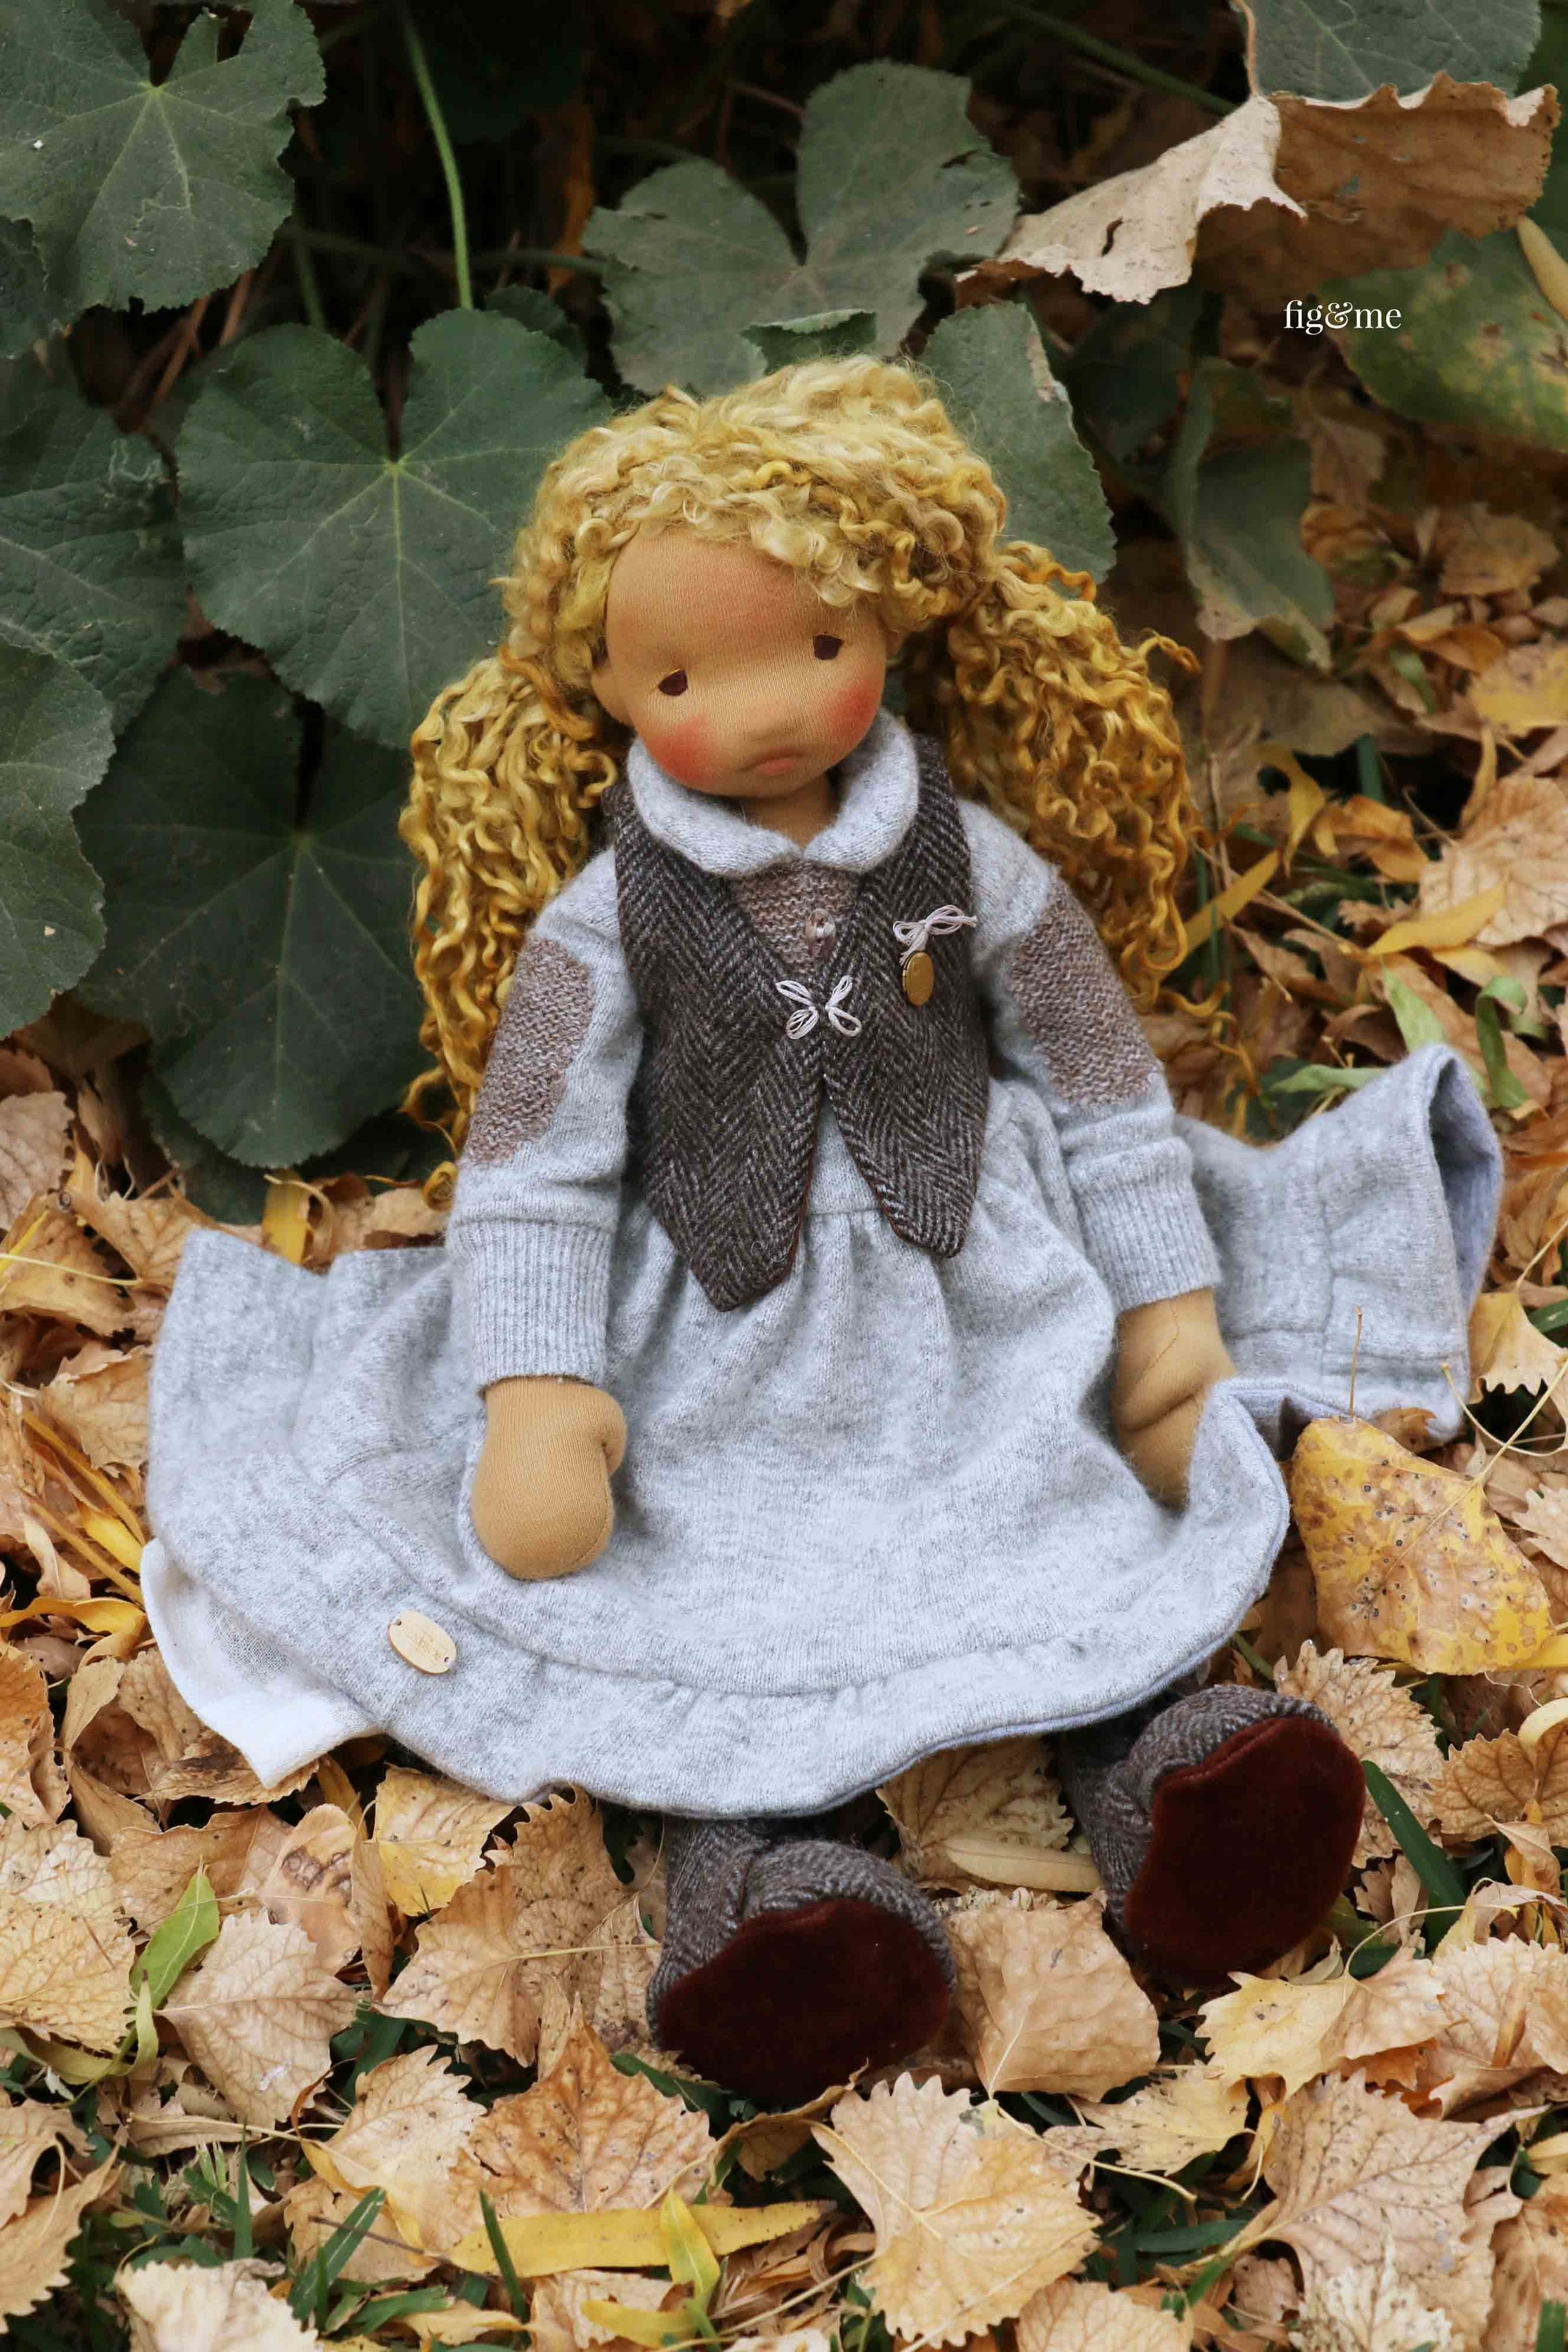 Mori, a natural cloth art doll by Fig and me. #dollmaking #clothdolls #sewingfordolls